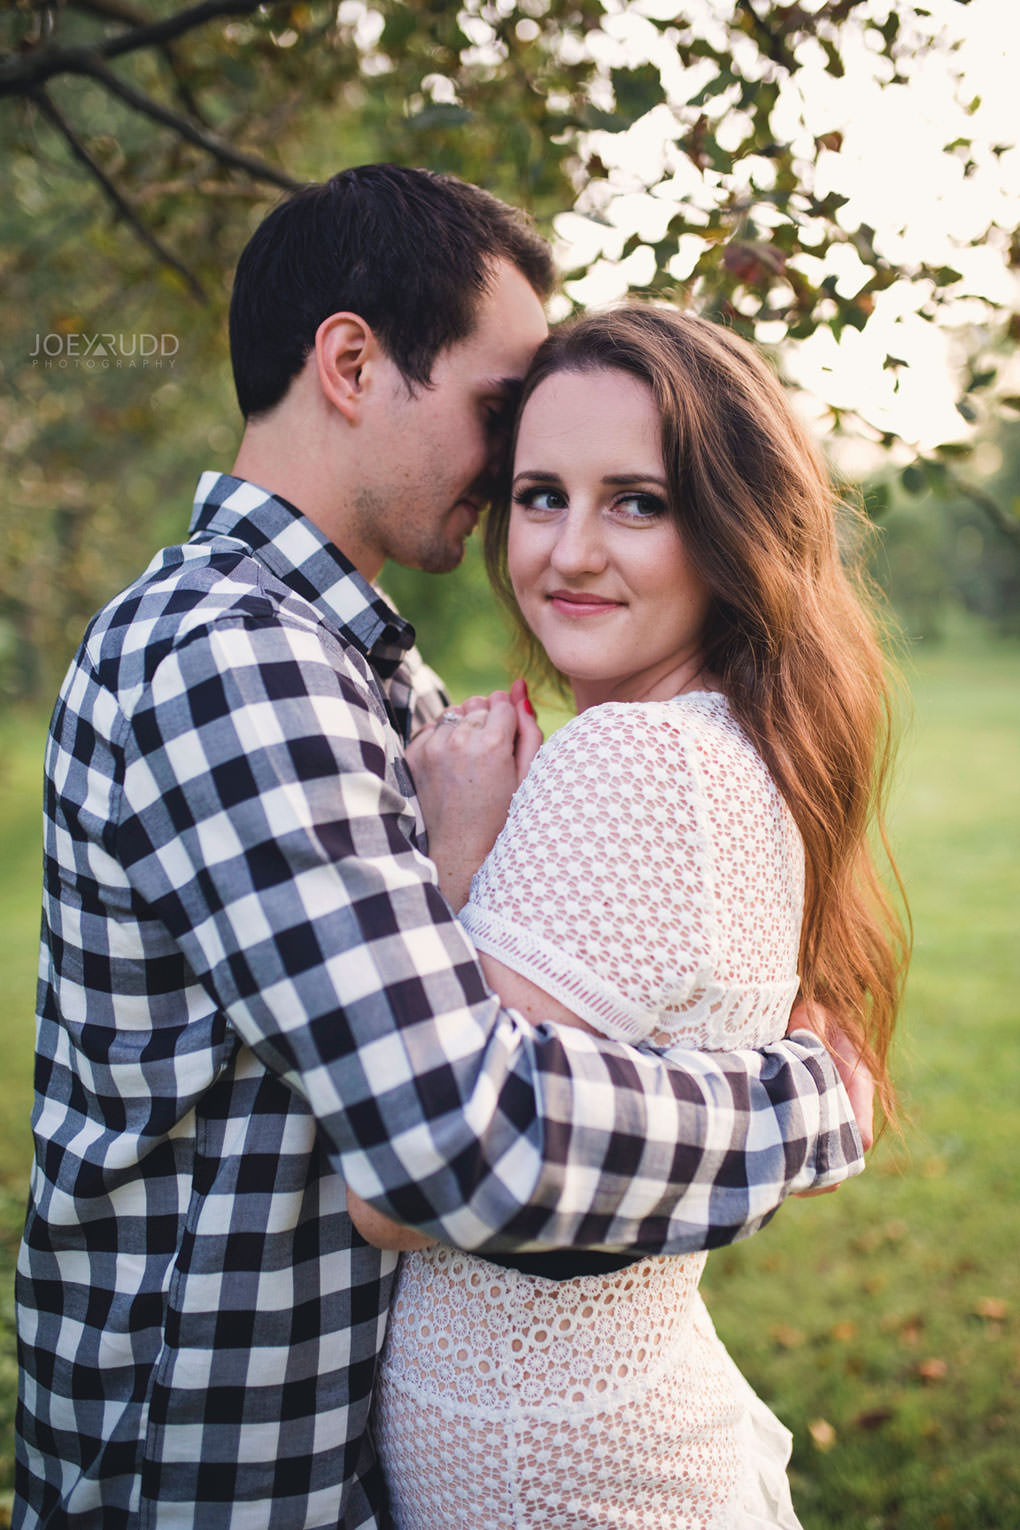 Ottawa Engagement Session at the Experimental Farm and Arboretum by Ottawa Wedding Photographer Joey Rudd Photography Best Pose